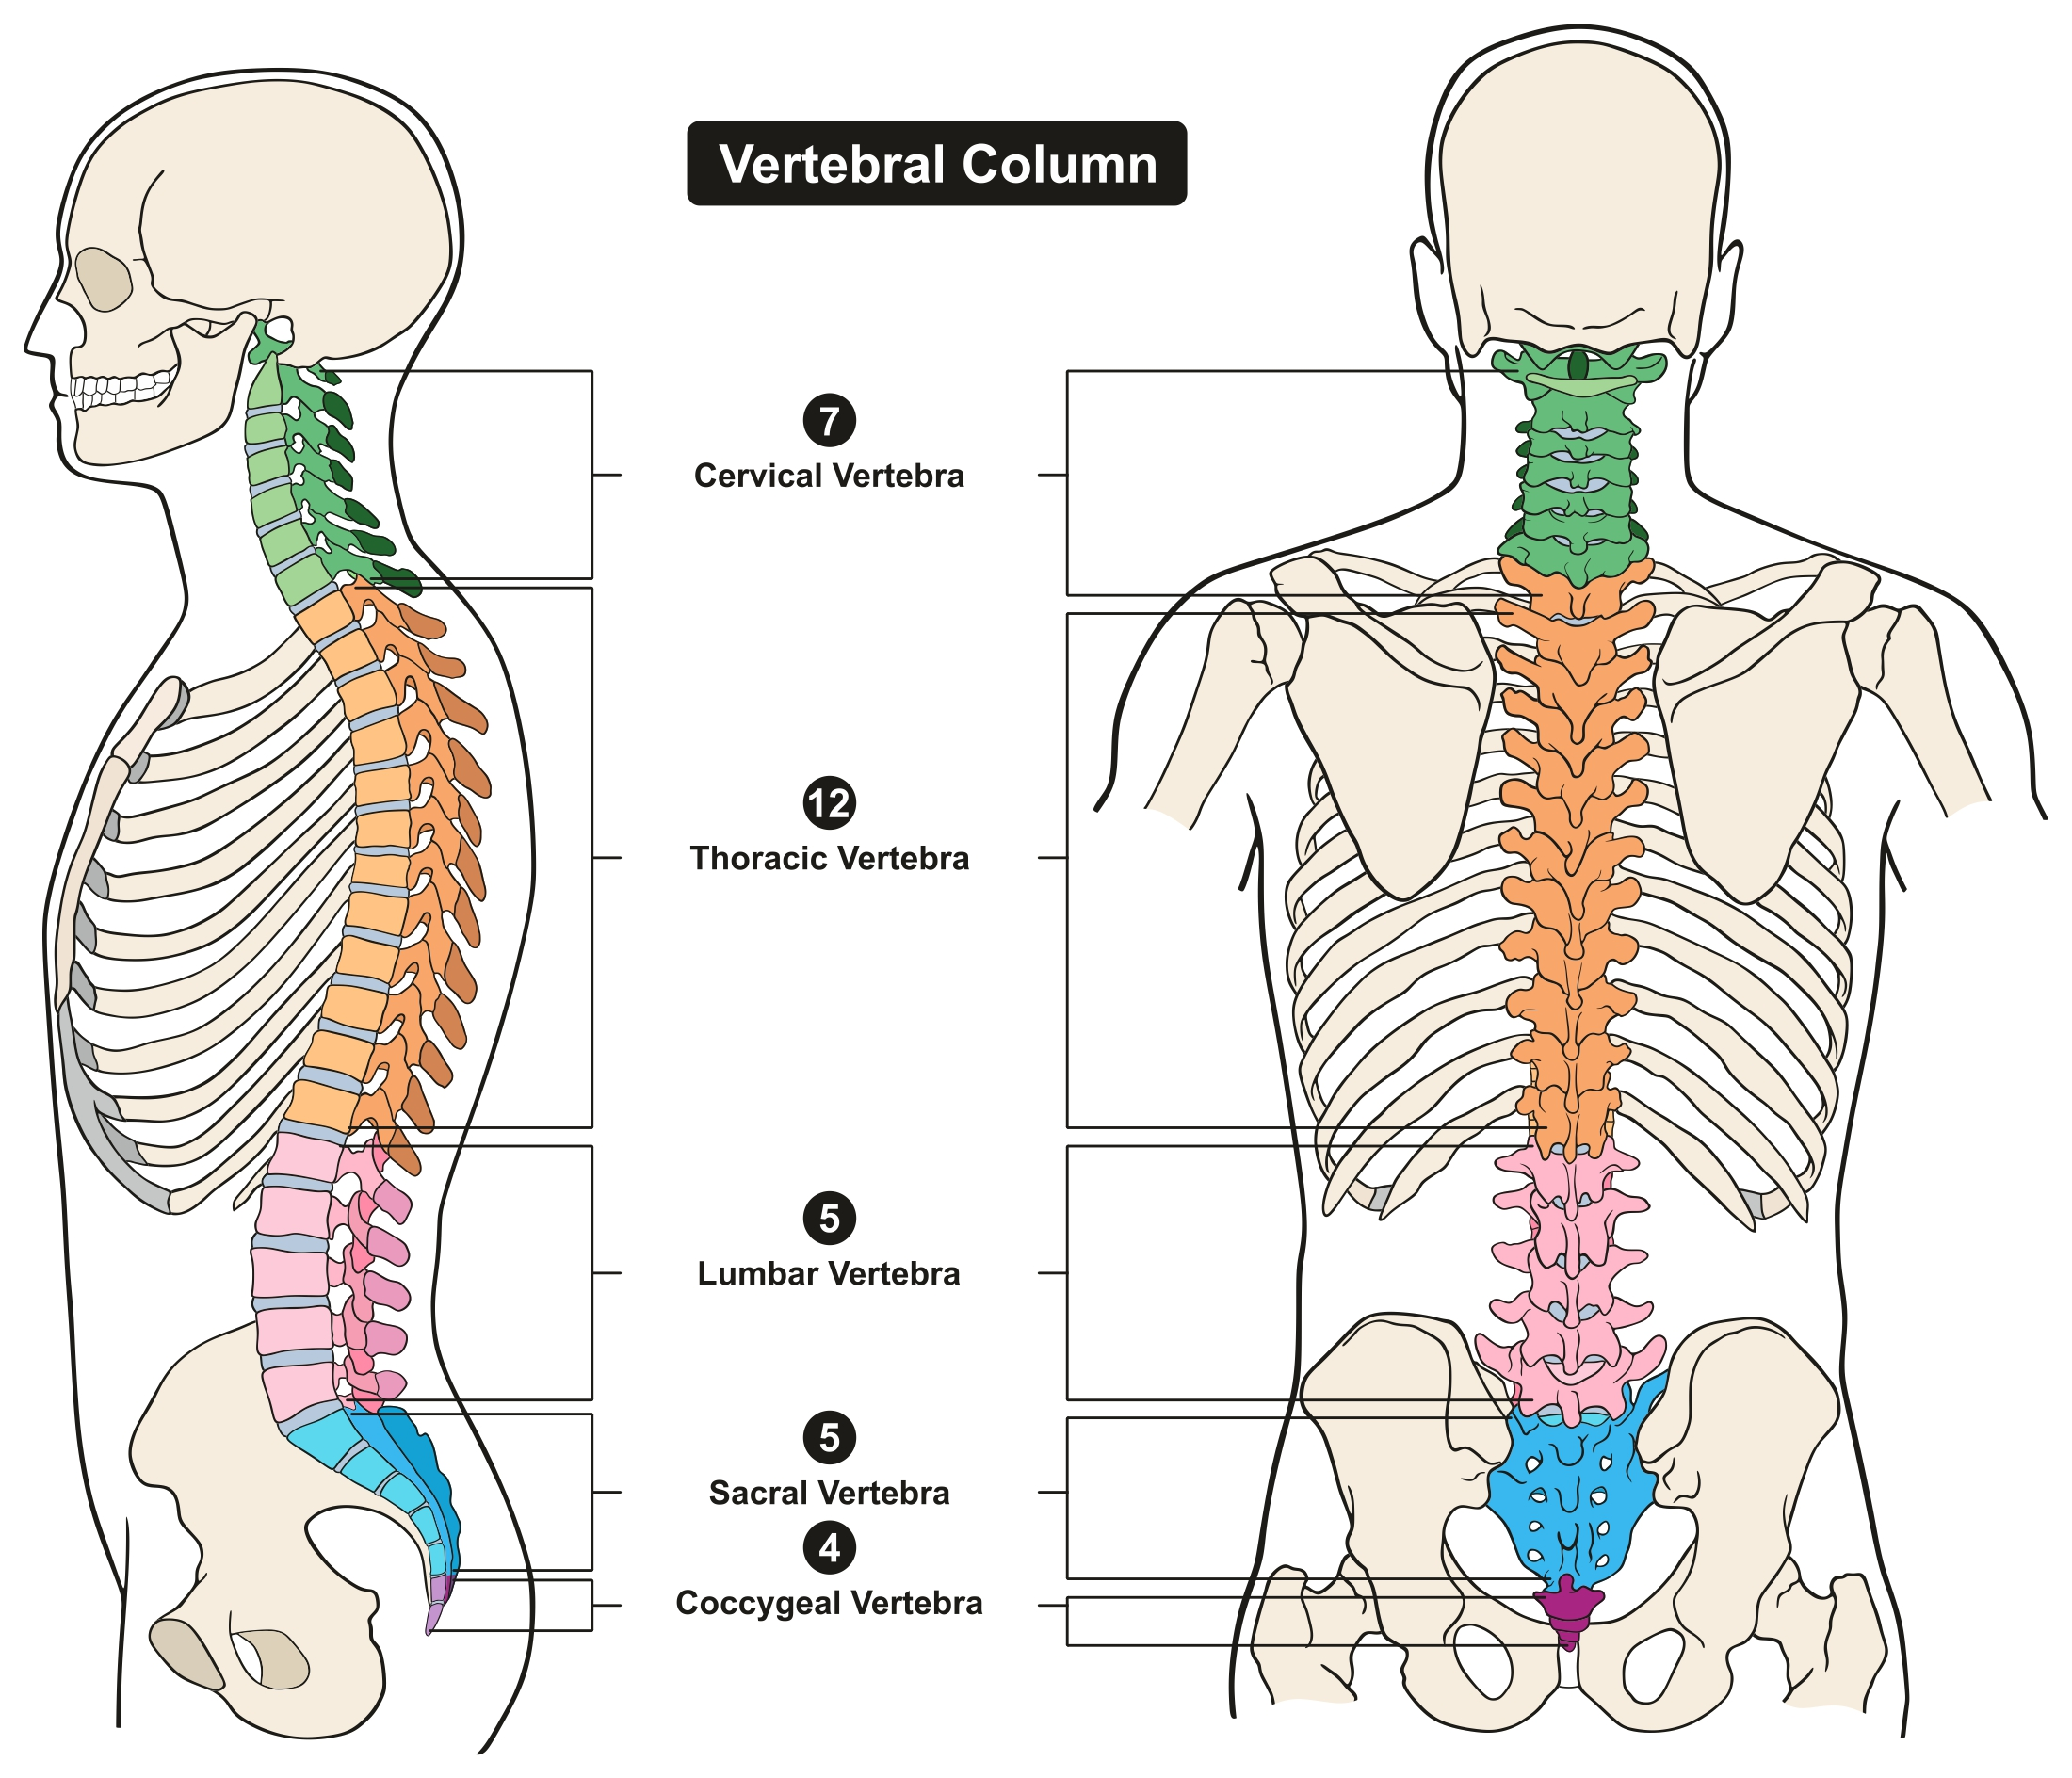 Vertebral Column of Human Body Anatomy